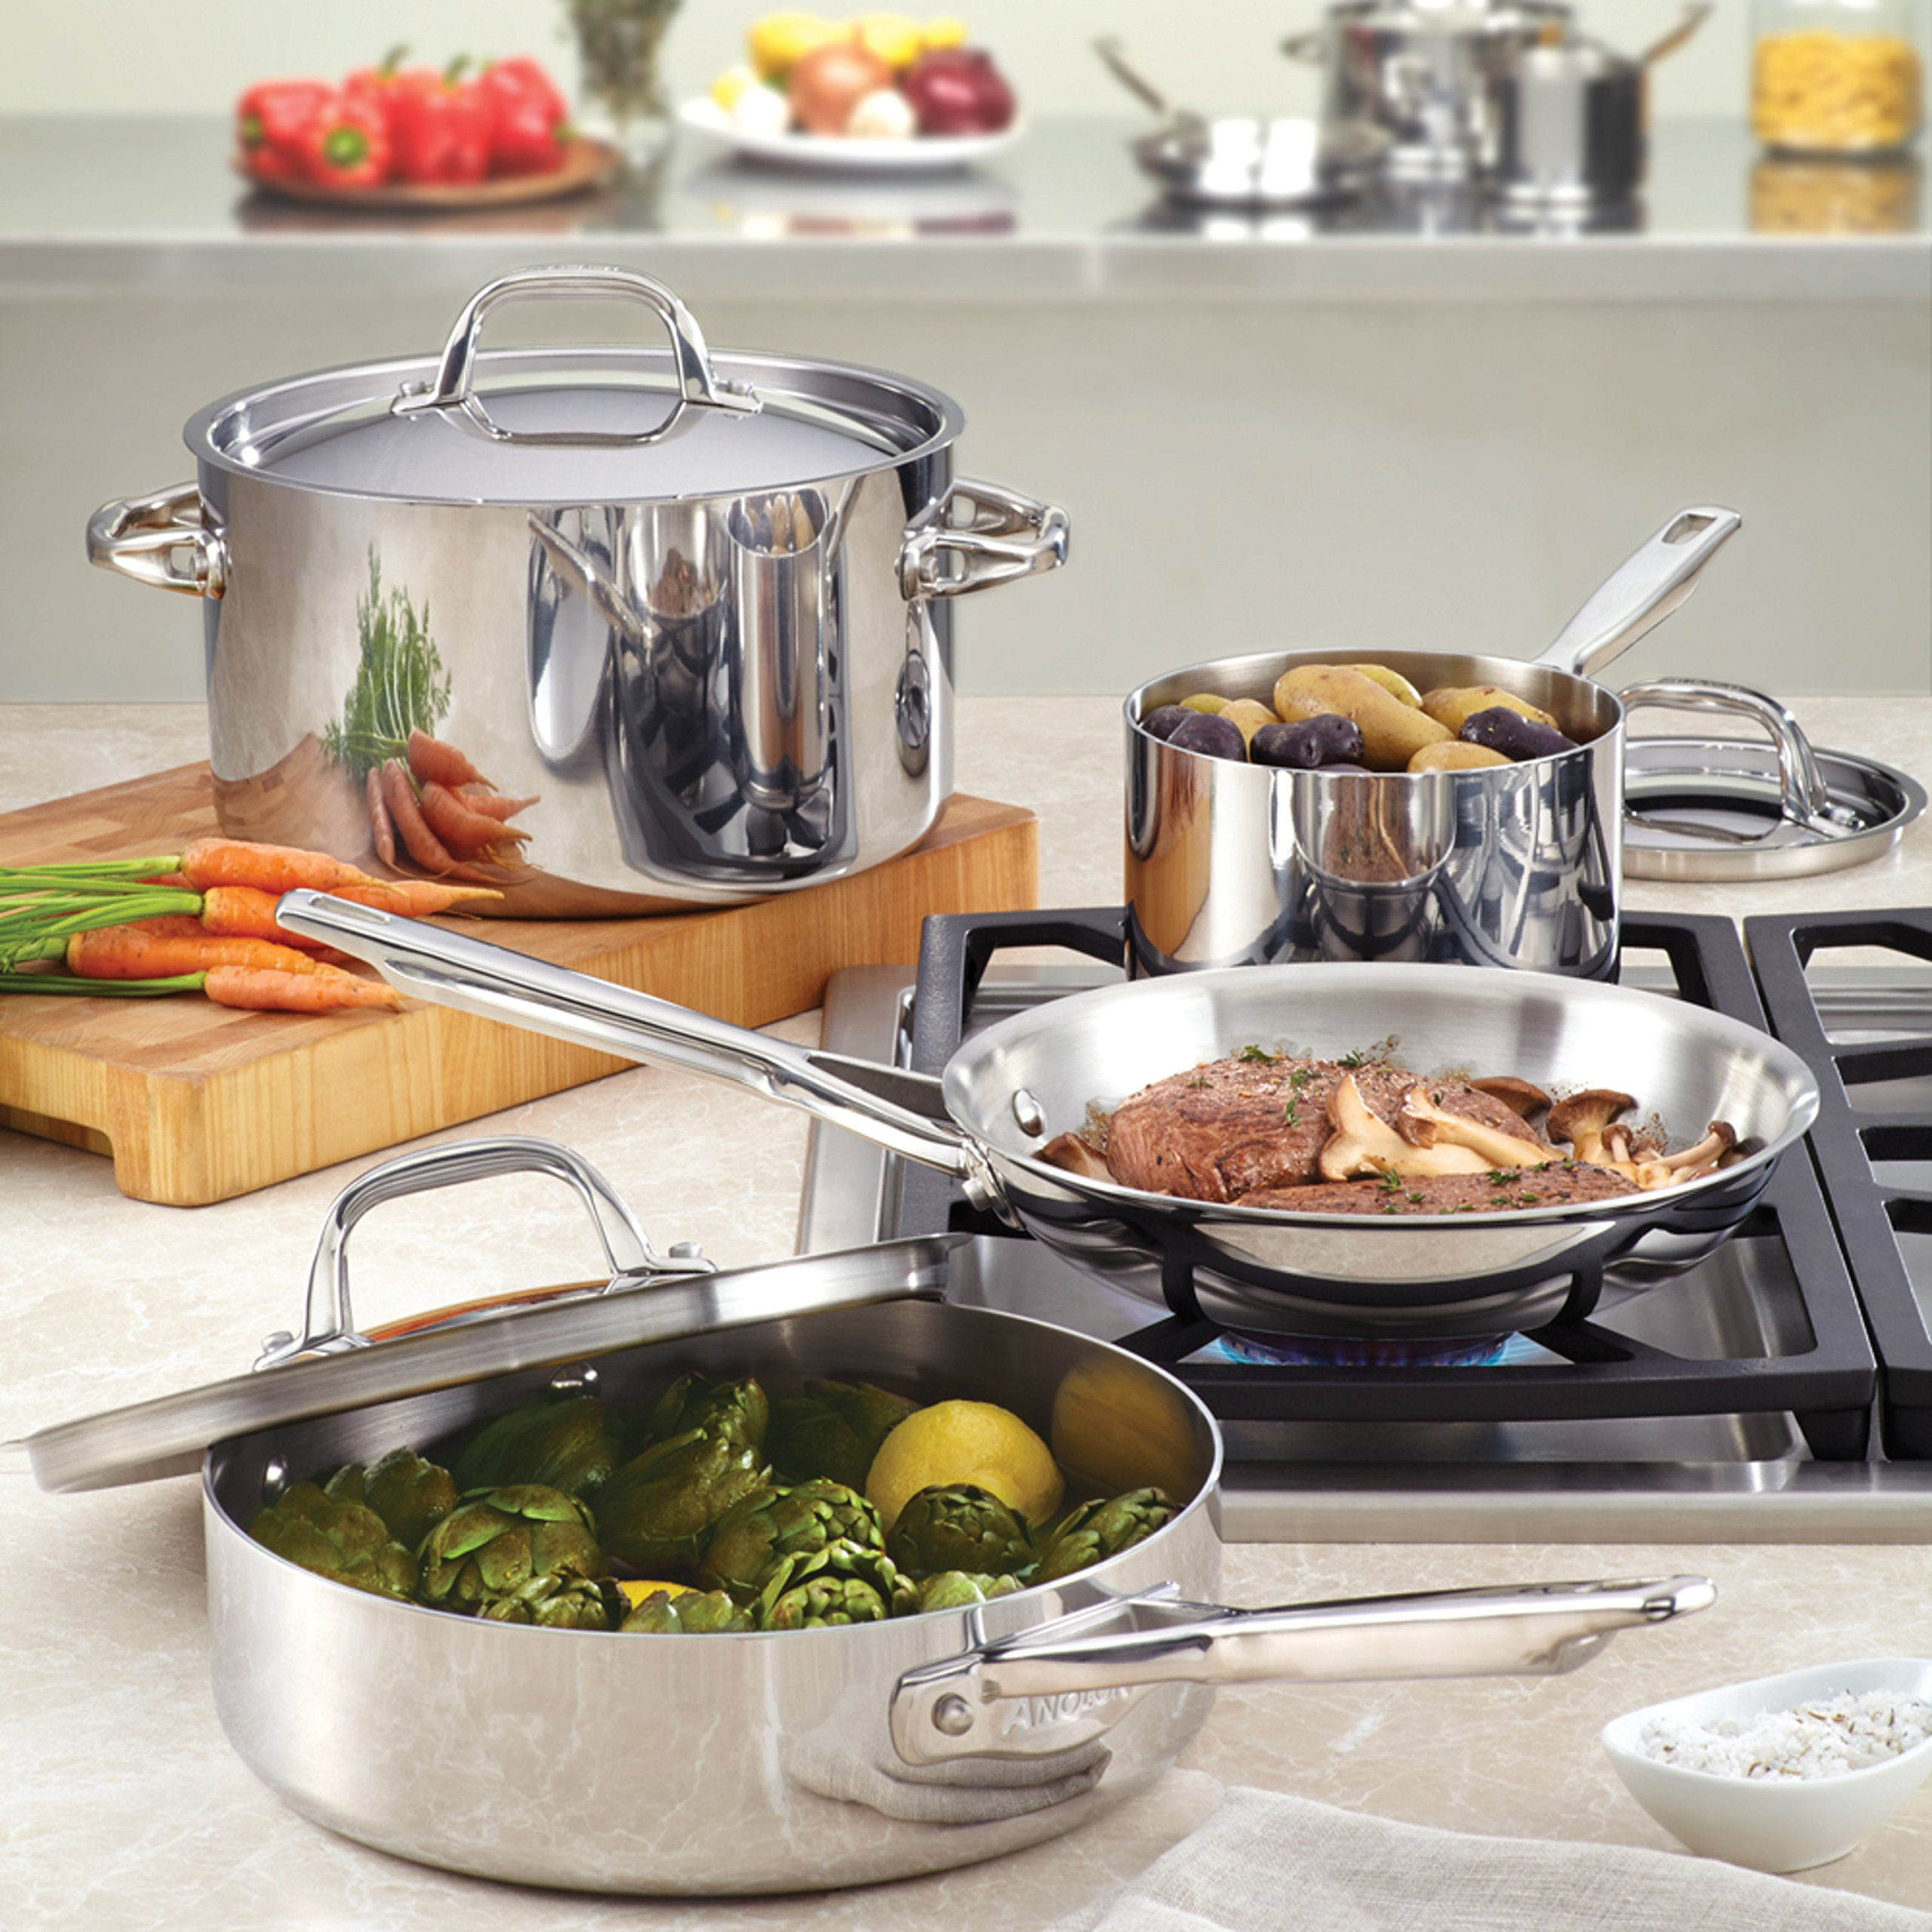 Anolon Tri-Ply Clad Stainless Steel 5-Quart Covered Saute with Helper Handle